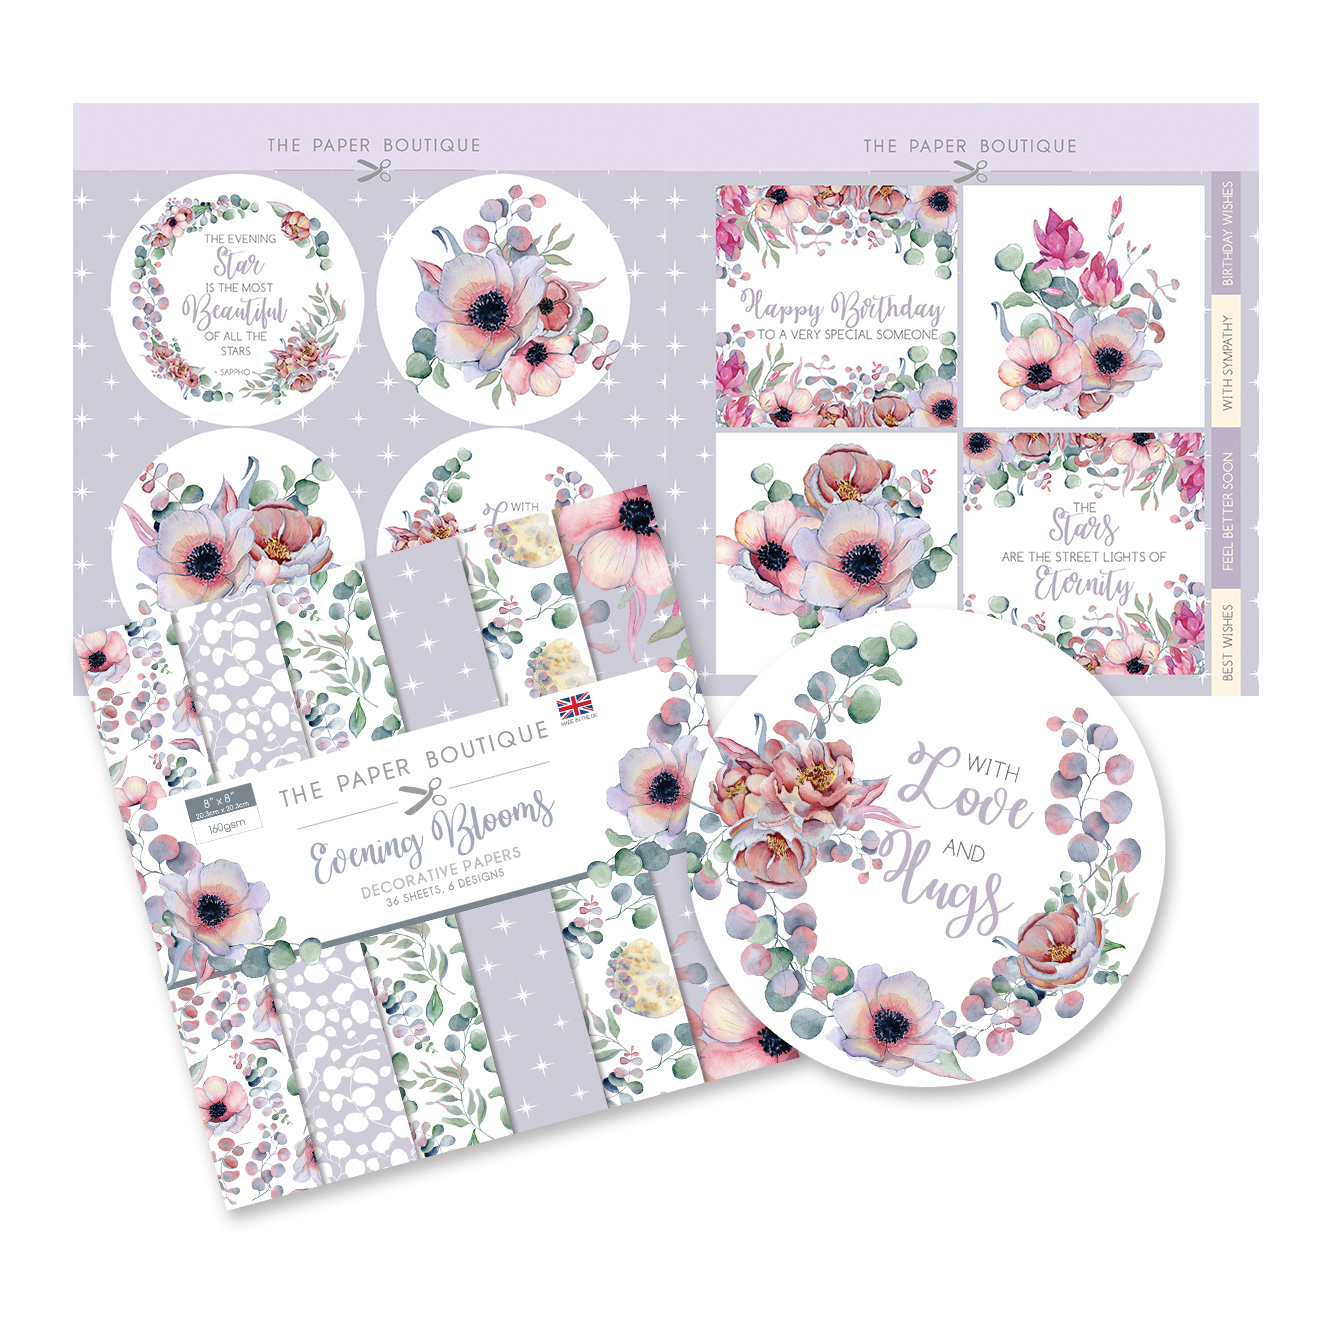 LUCKY DIP –  The Paper Boutique 8″ x 8″ Paper Kit